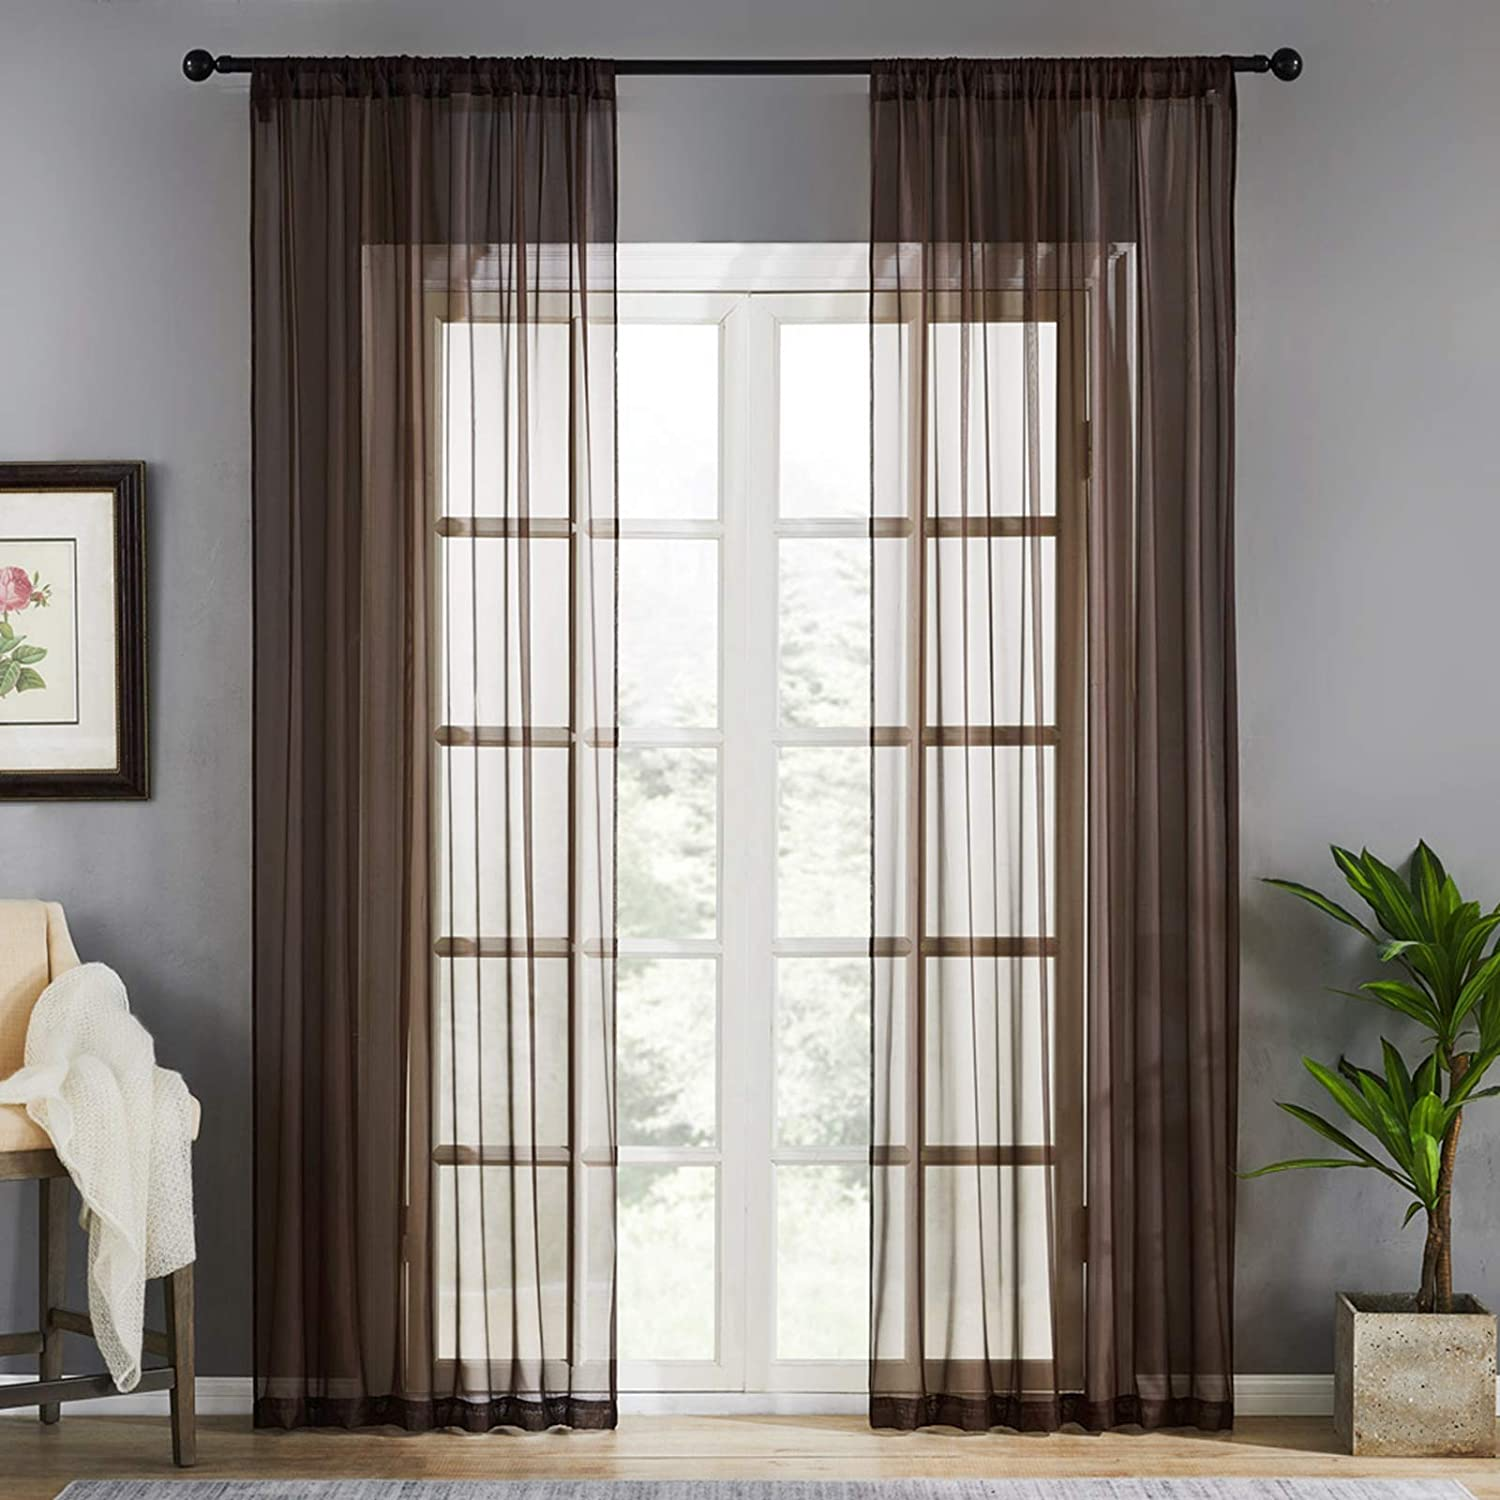 MRTREES Sheer Curtains Living Room 84 inch Length Bedroom Sheers Voile Curtain Panels Light Filtering Drapes Window Treatment Set Rod Pocket 2 Panels Coffee Brown